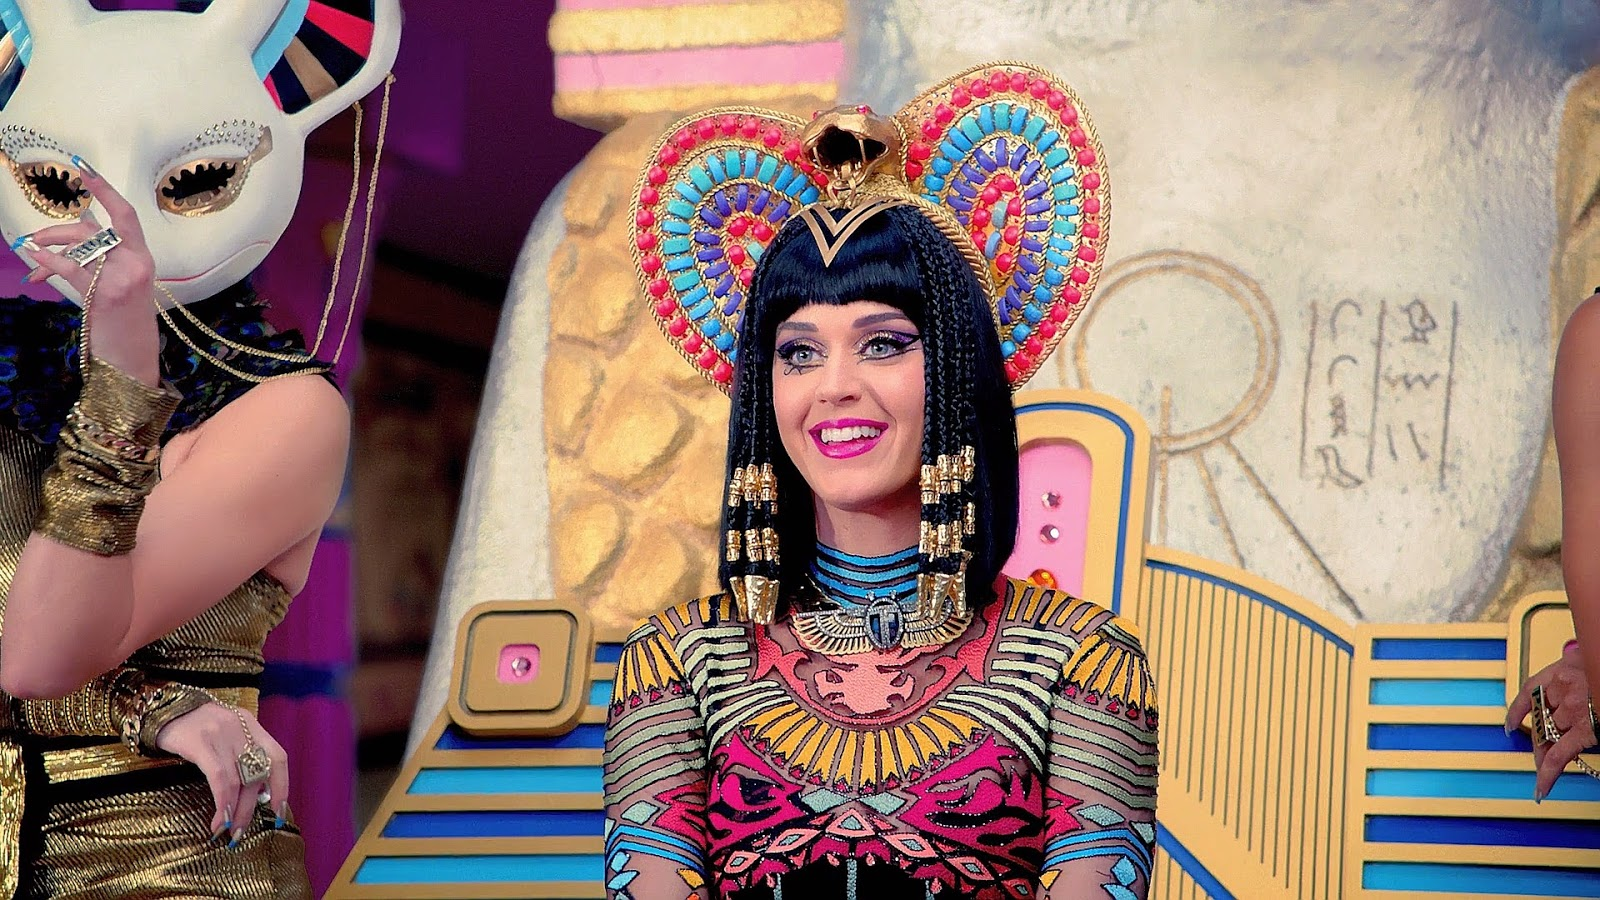 Katy Perry ft. Juicy J - Dark Horse [1080p-Tidal]